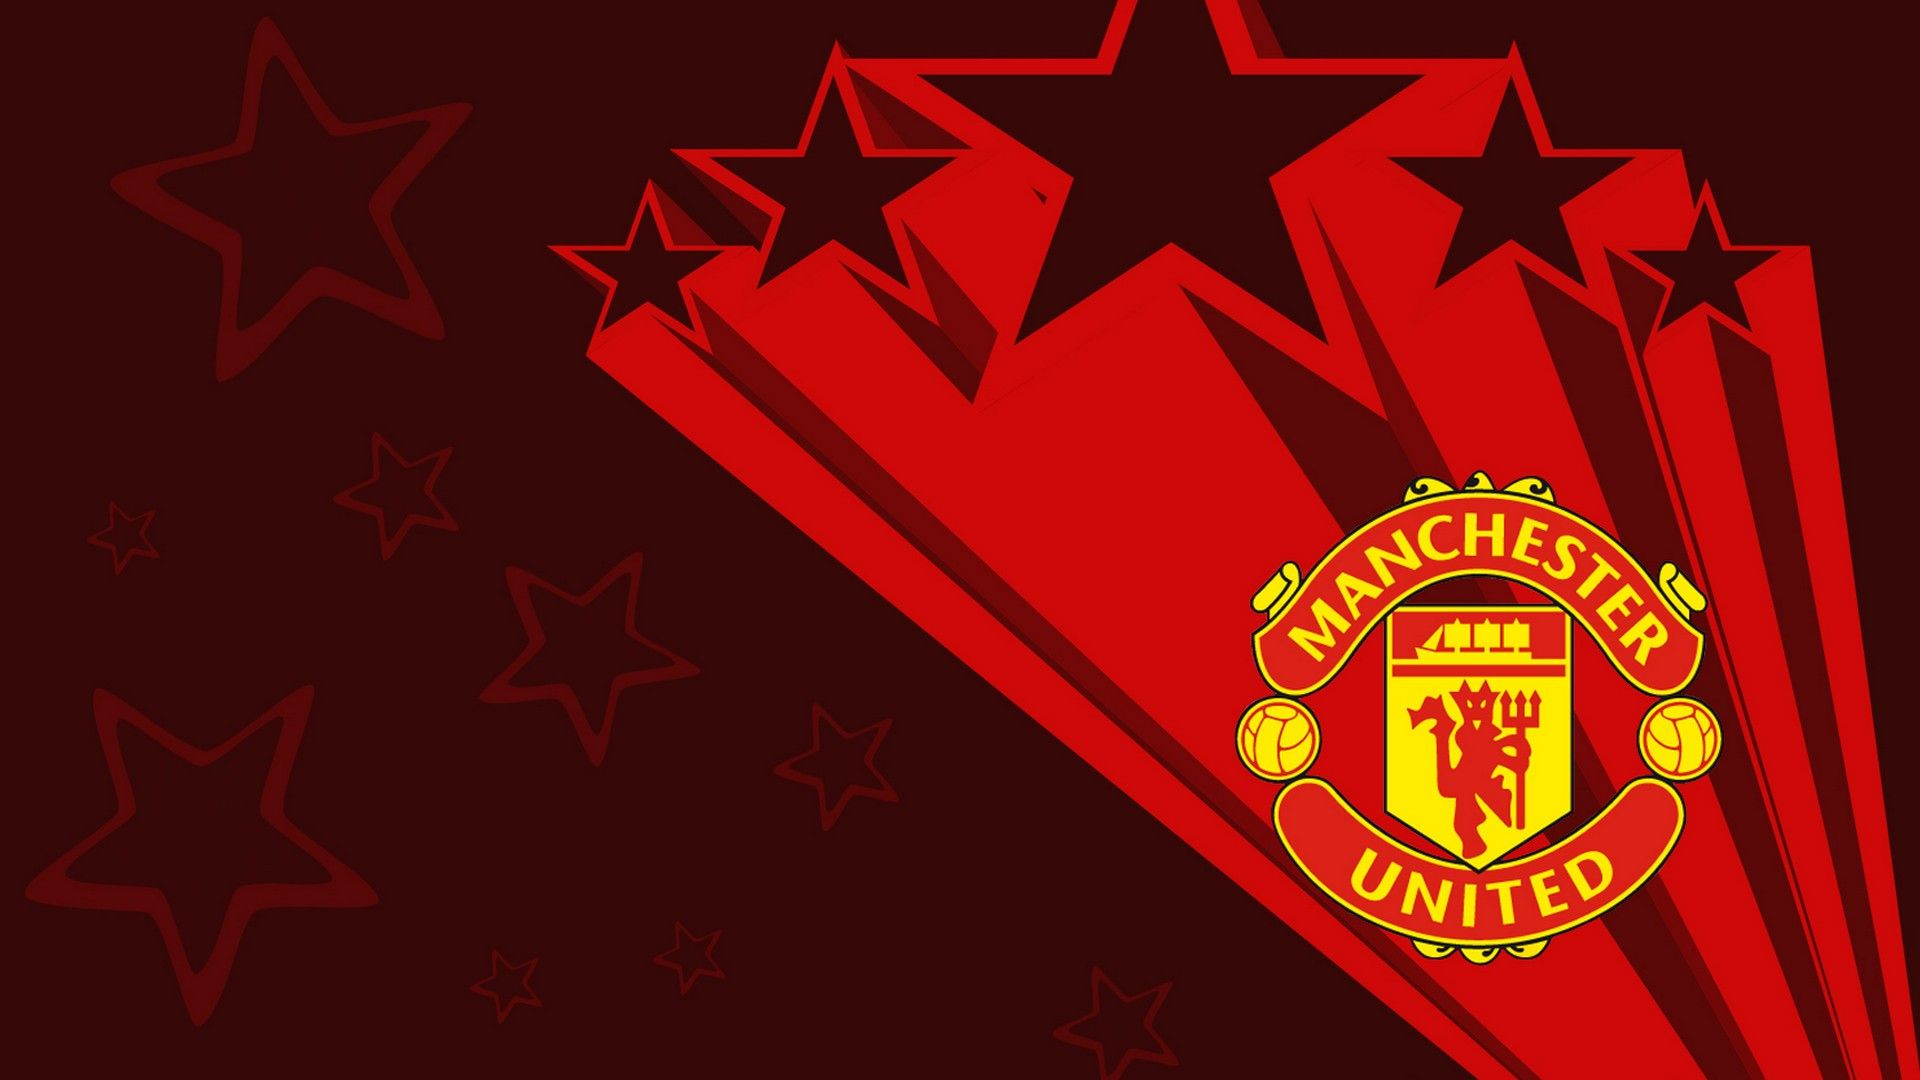 United Wallpapers Top Free United Backgrounds Wallpaperaccess